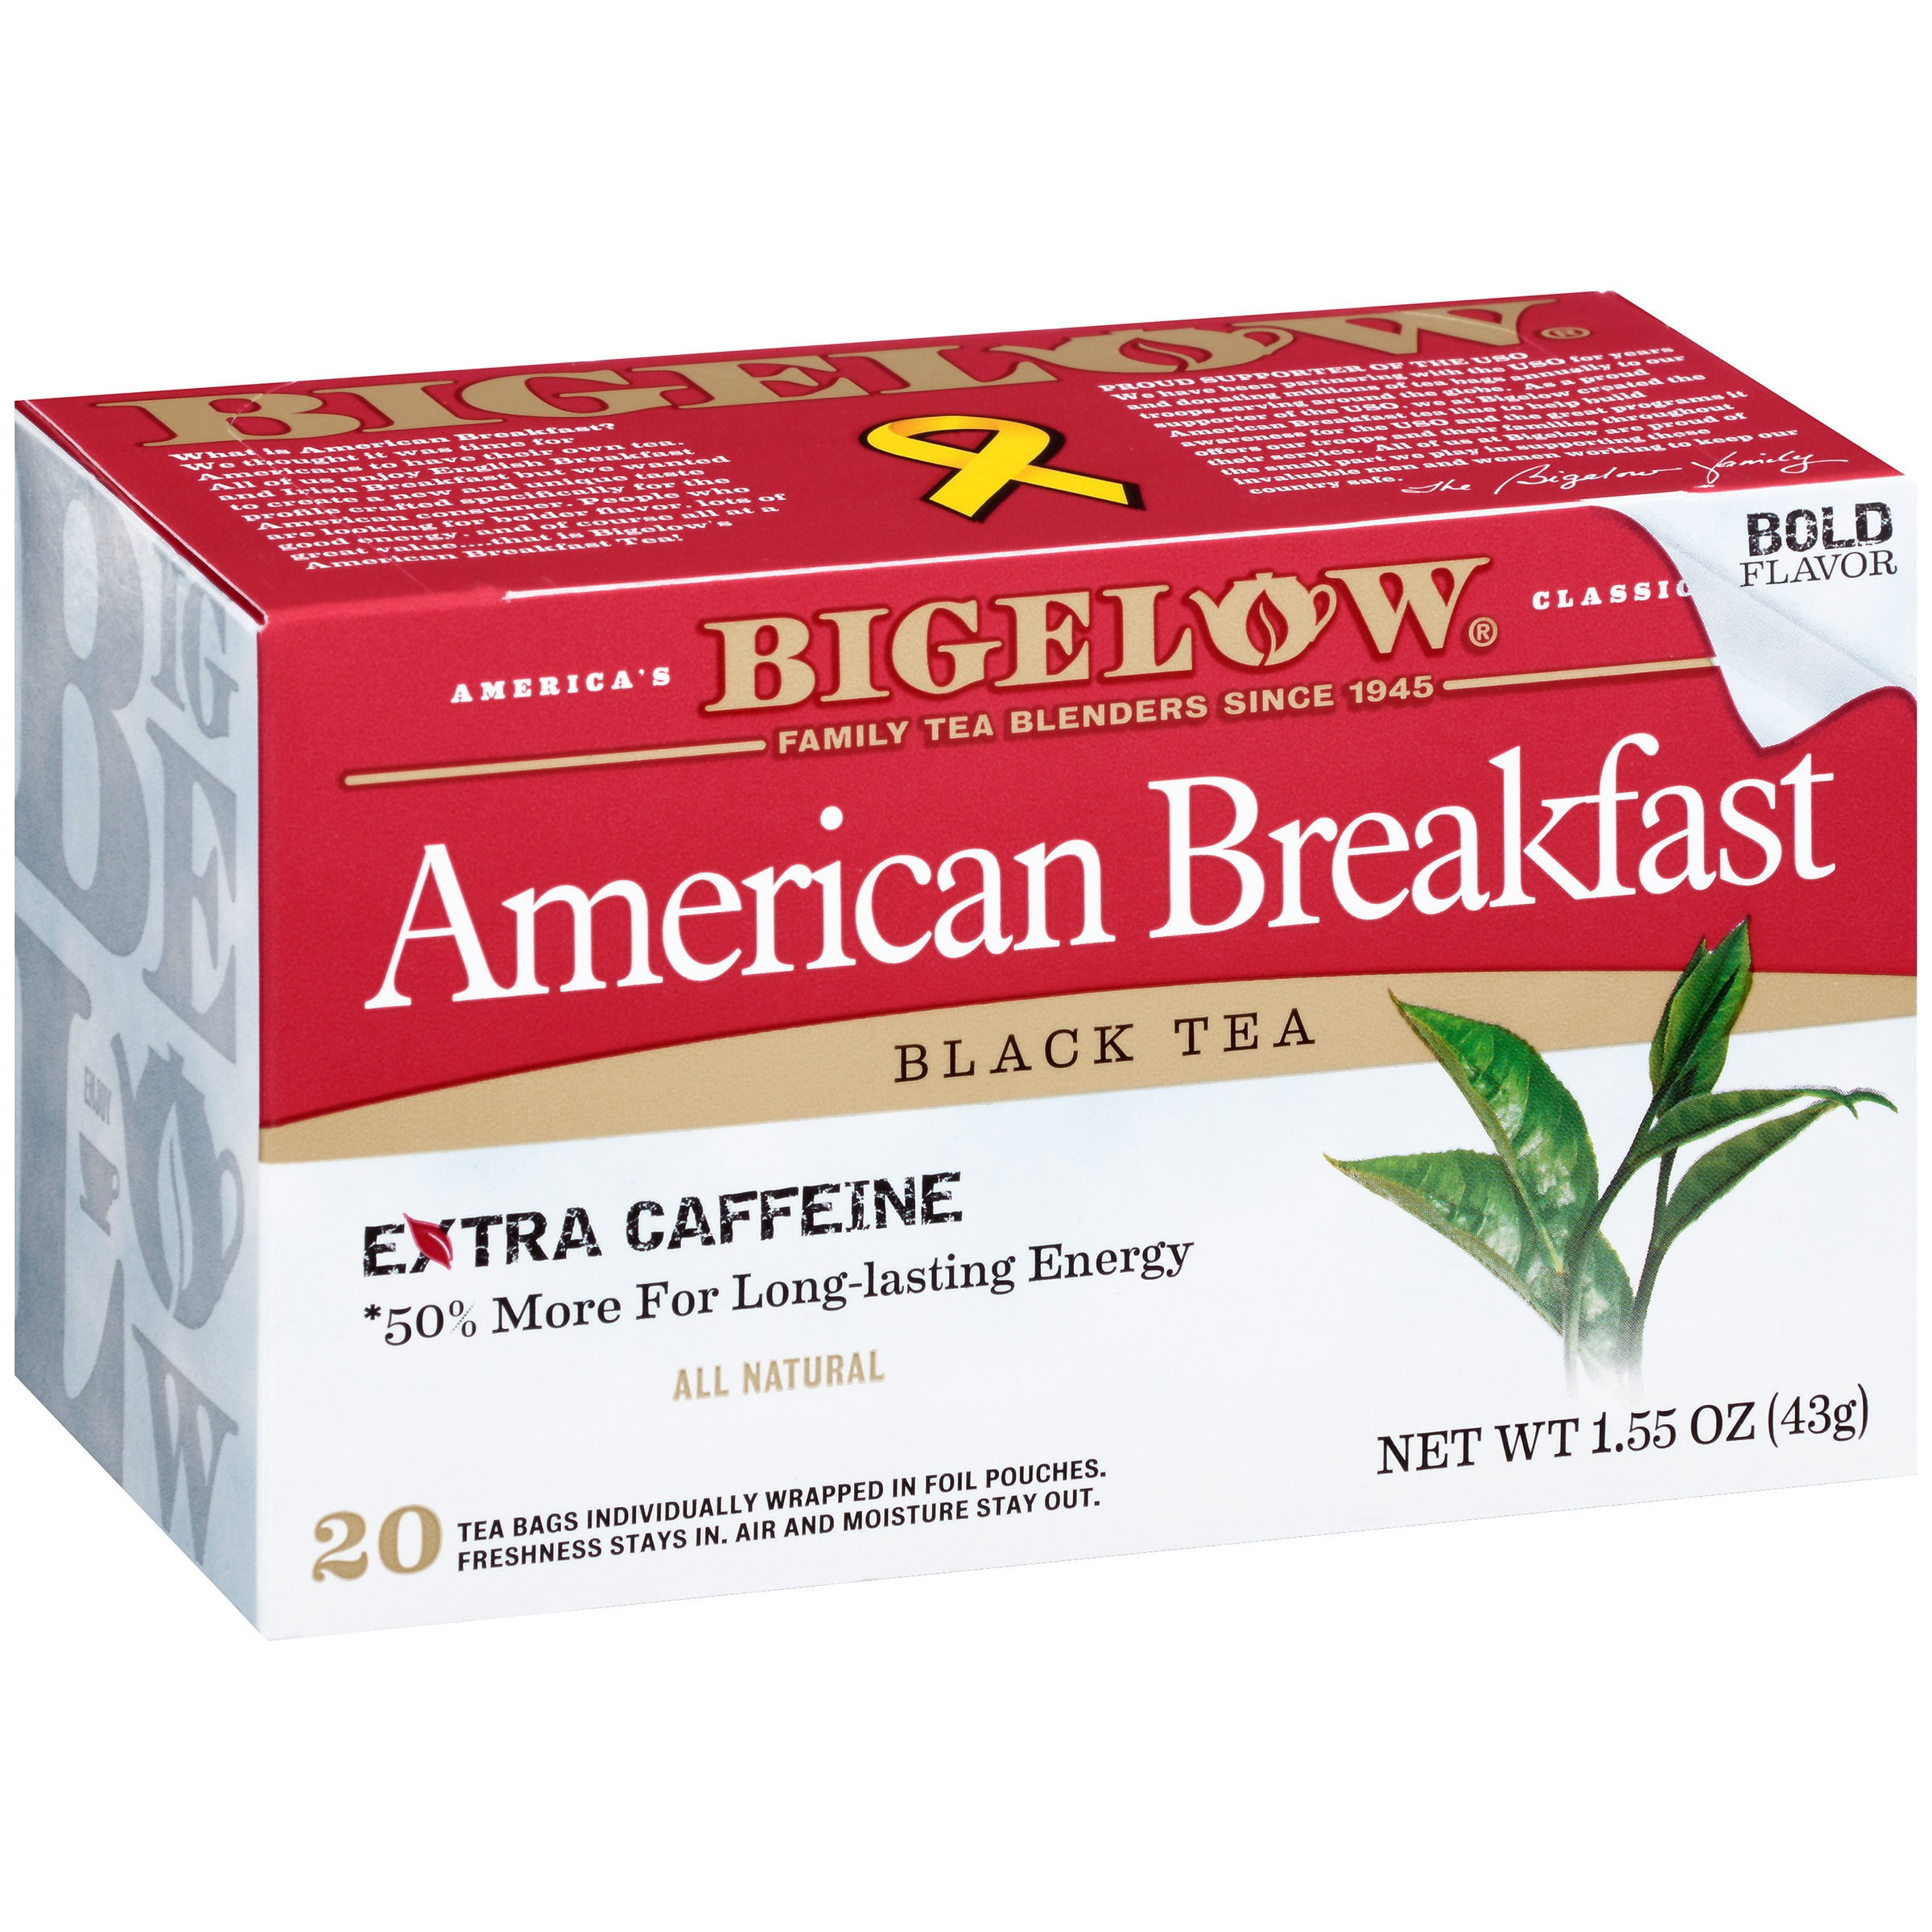 Bigelow® American Breakfast Black Tea Bags 20 ct Box